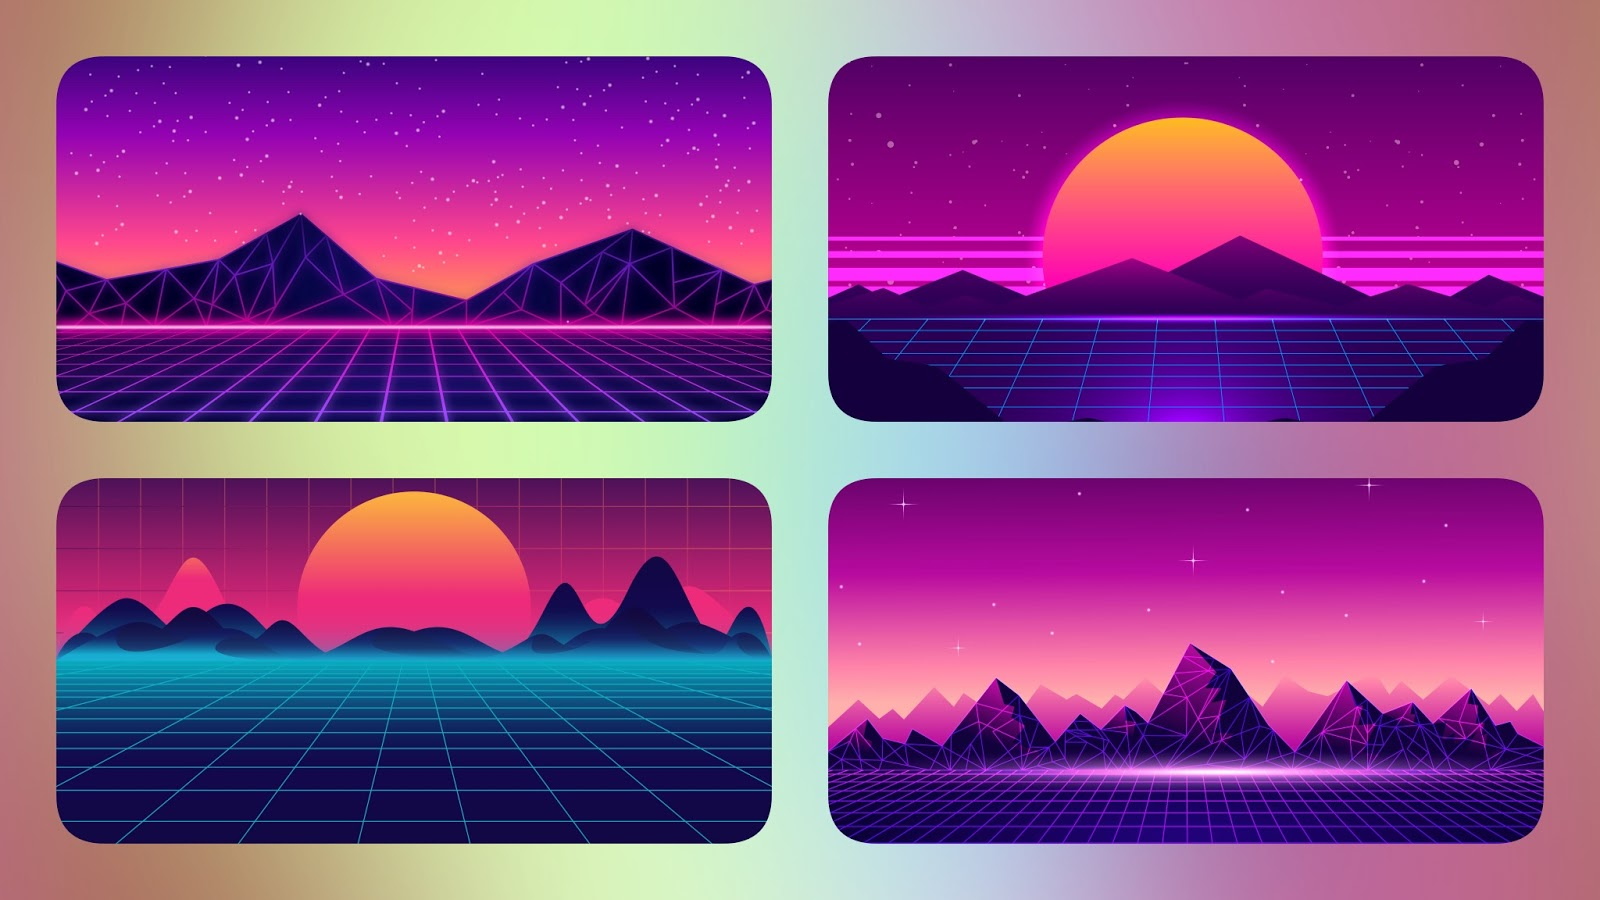 Download 4 synthwave desktop wallpapers